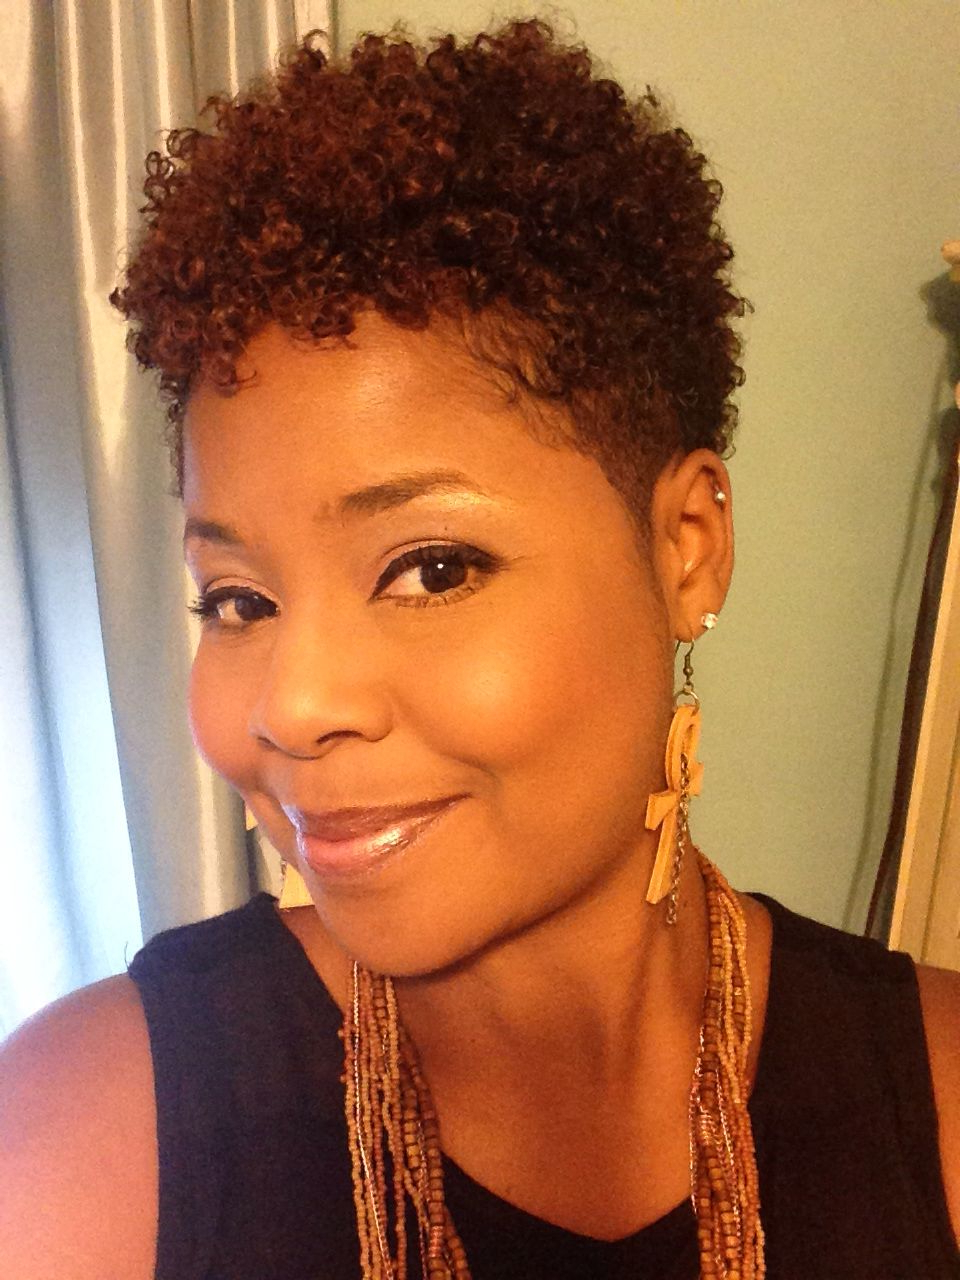 Pin On The Natural Hair Monologues! Look Ma No Relaxer! Intended For Trendy Gray Faux Hawk Hairstyles (View 8 of 20)